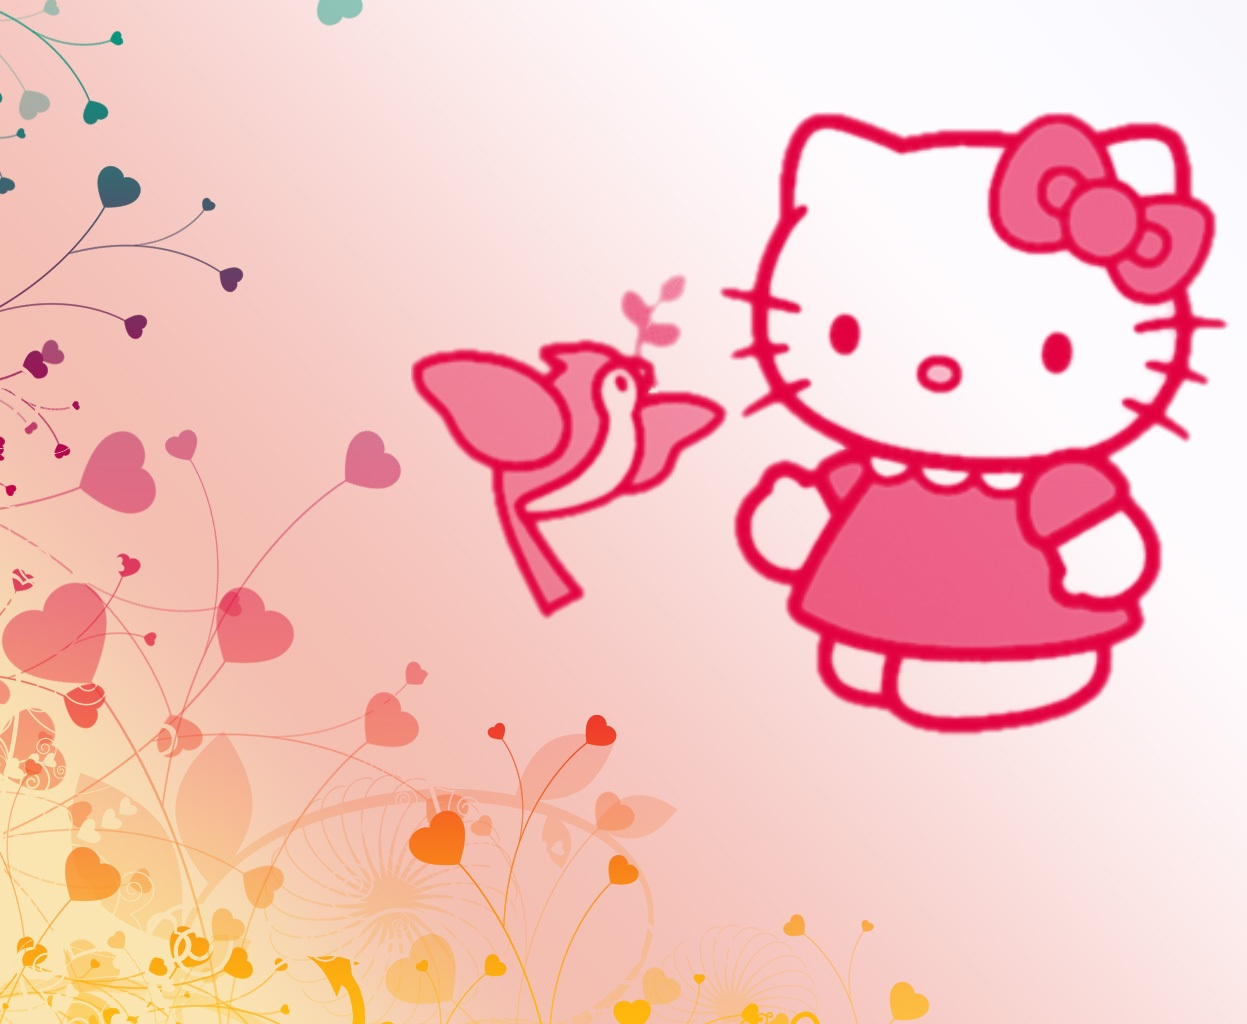 Wallpaper Hello Kitty HD | Deloiz Wallpaper